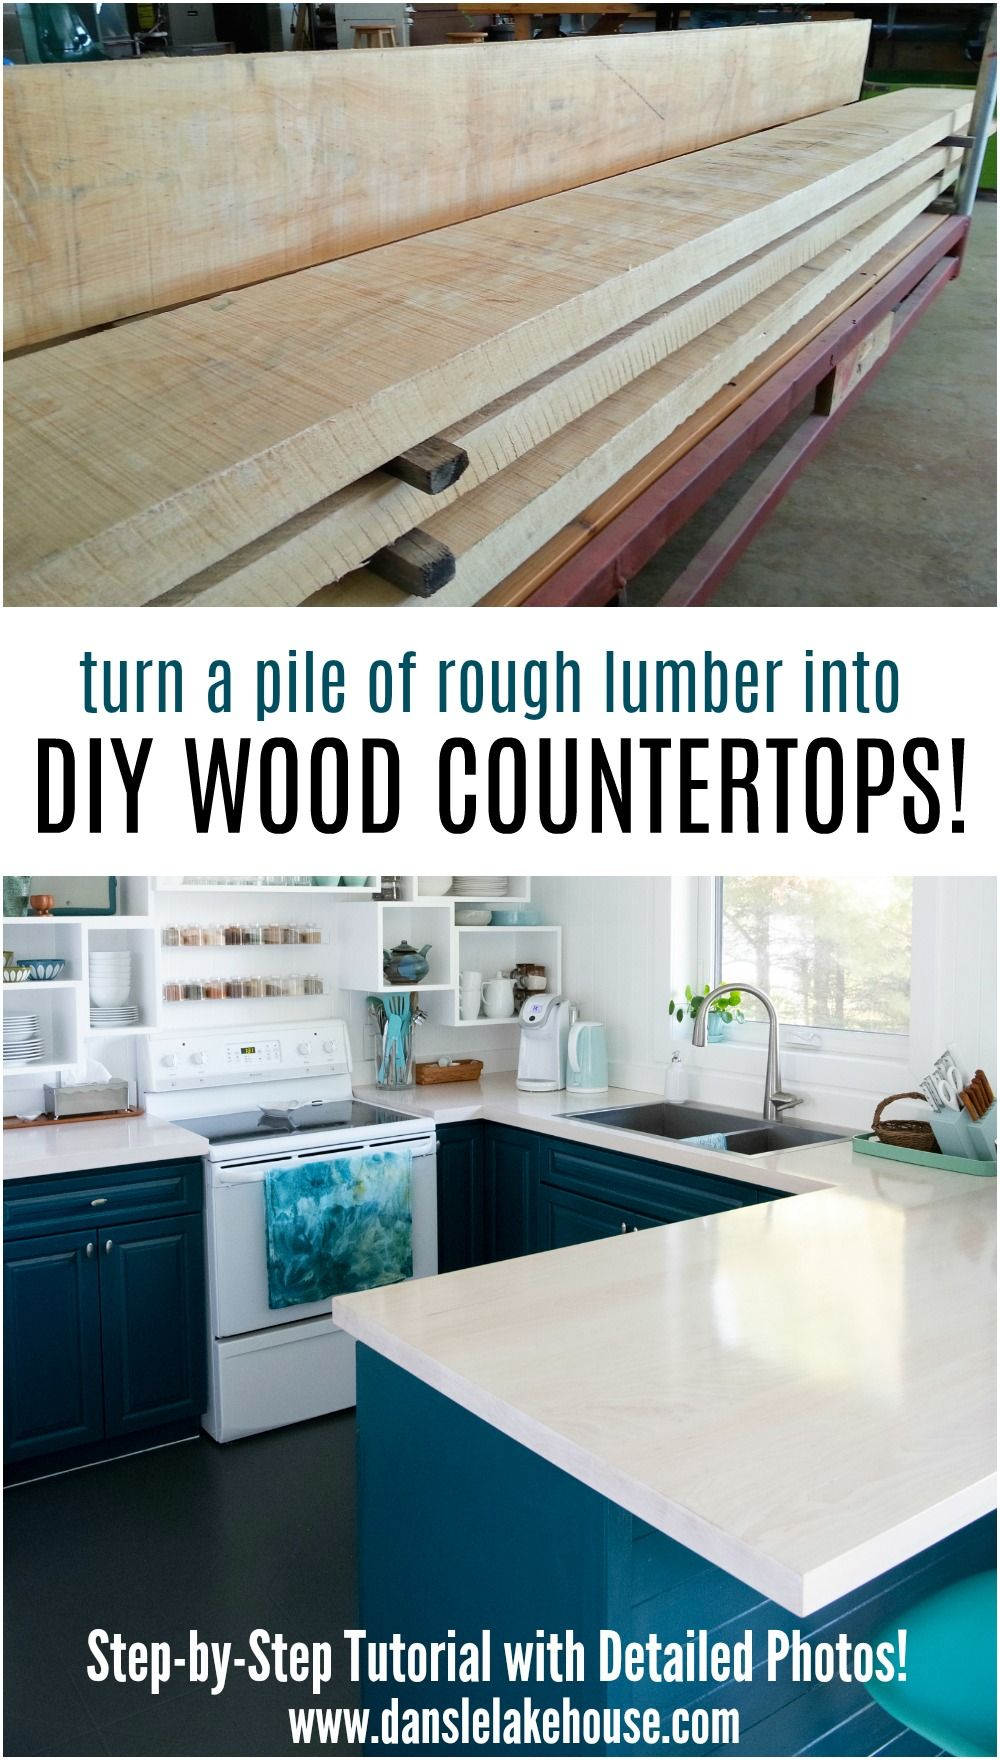 Download Wallpaper How To Seal Kitchen Plinth